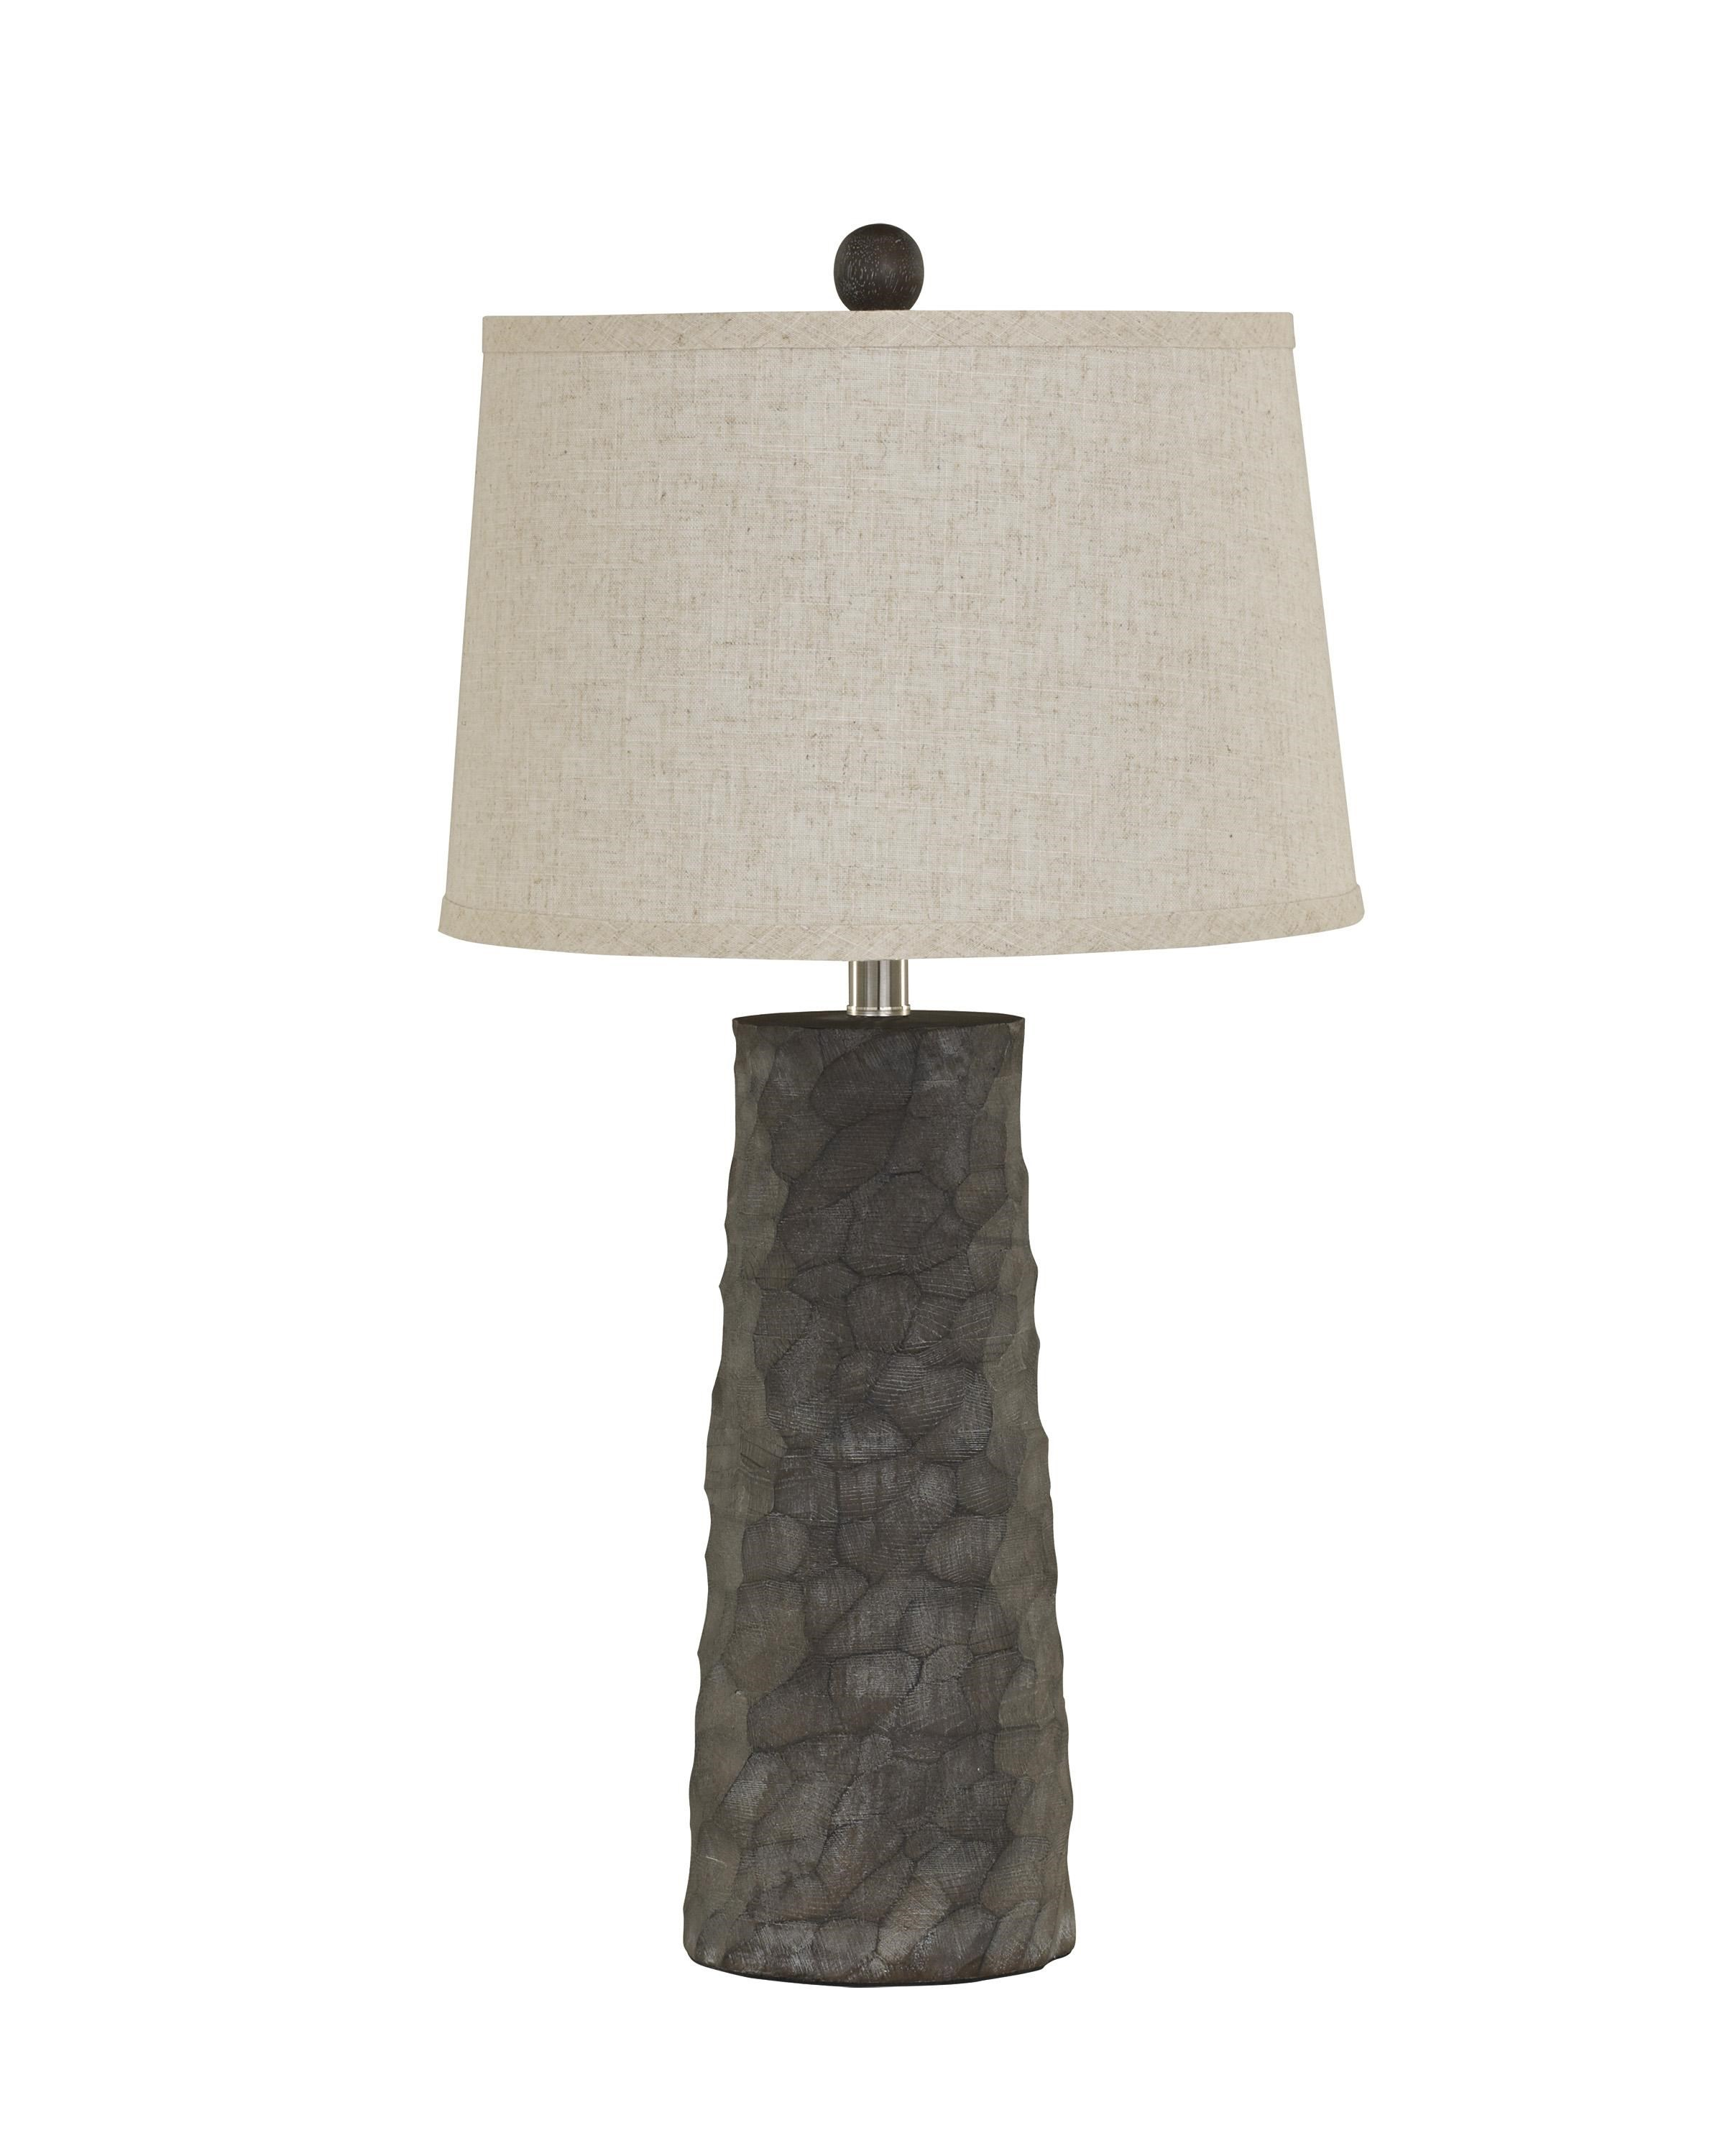 Etonnant Signature Design By Ashley Lamps   Vintage StyleSet Of 2 Sinda Poly Table  Lamps